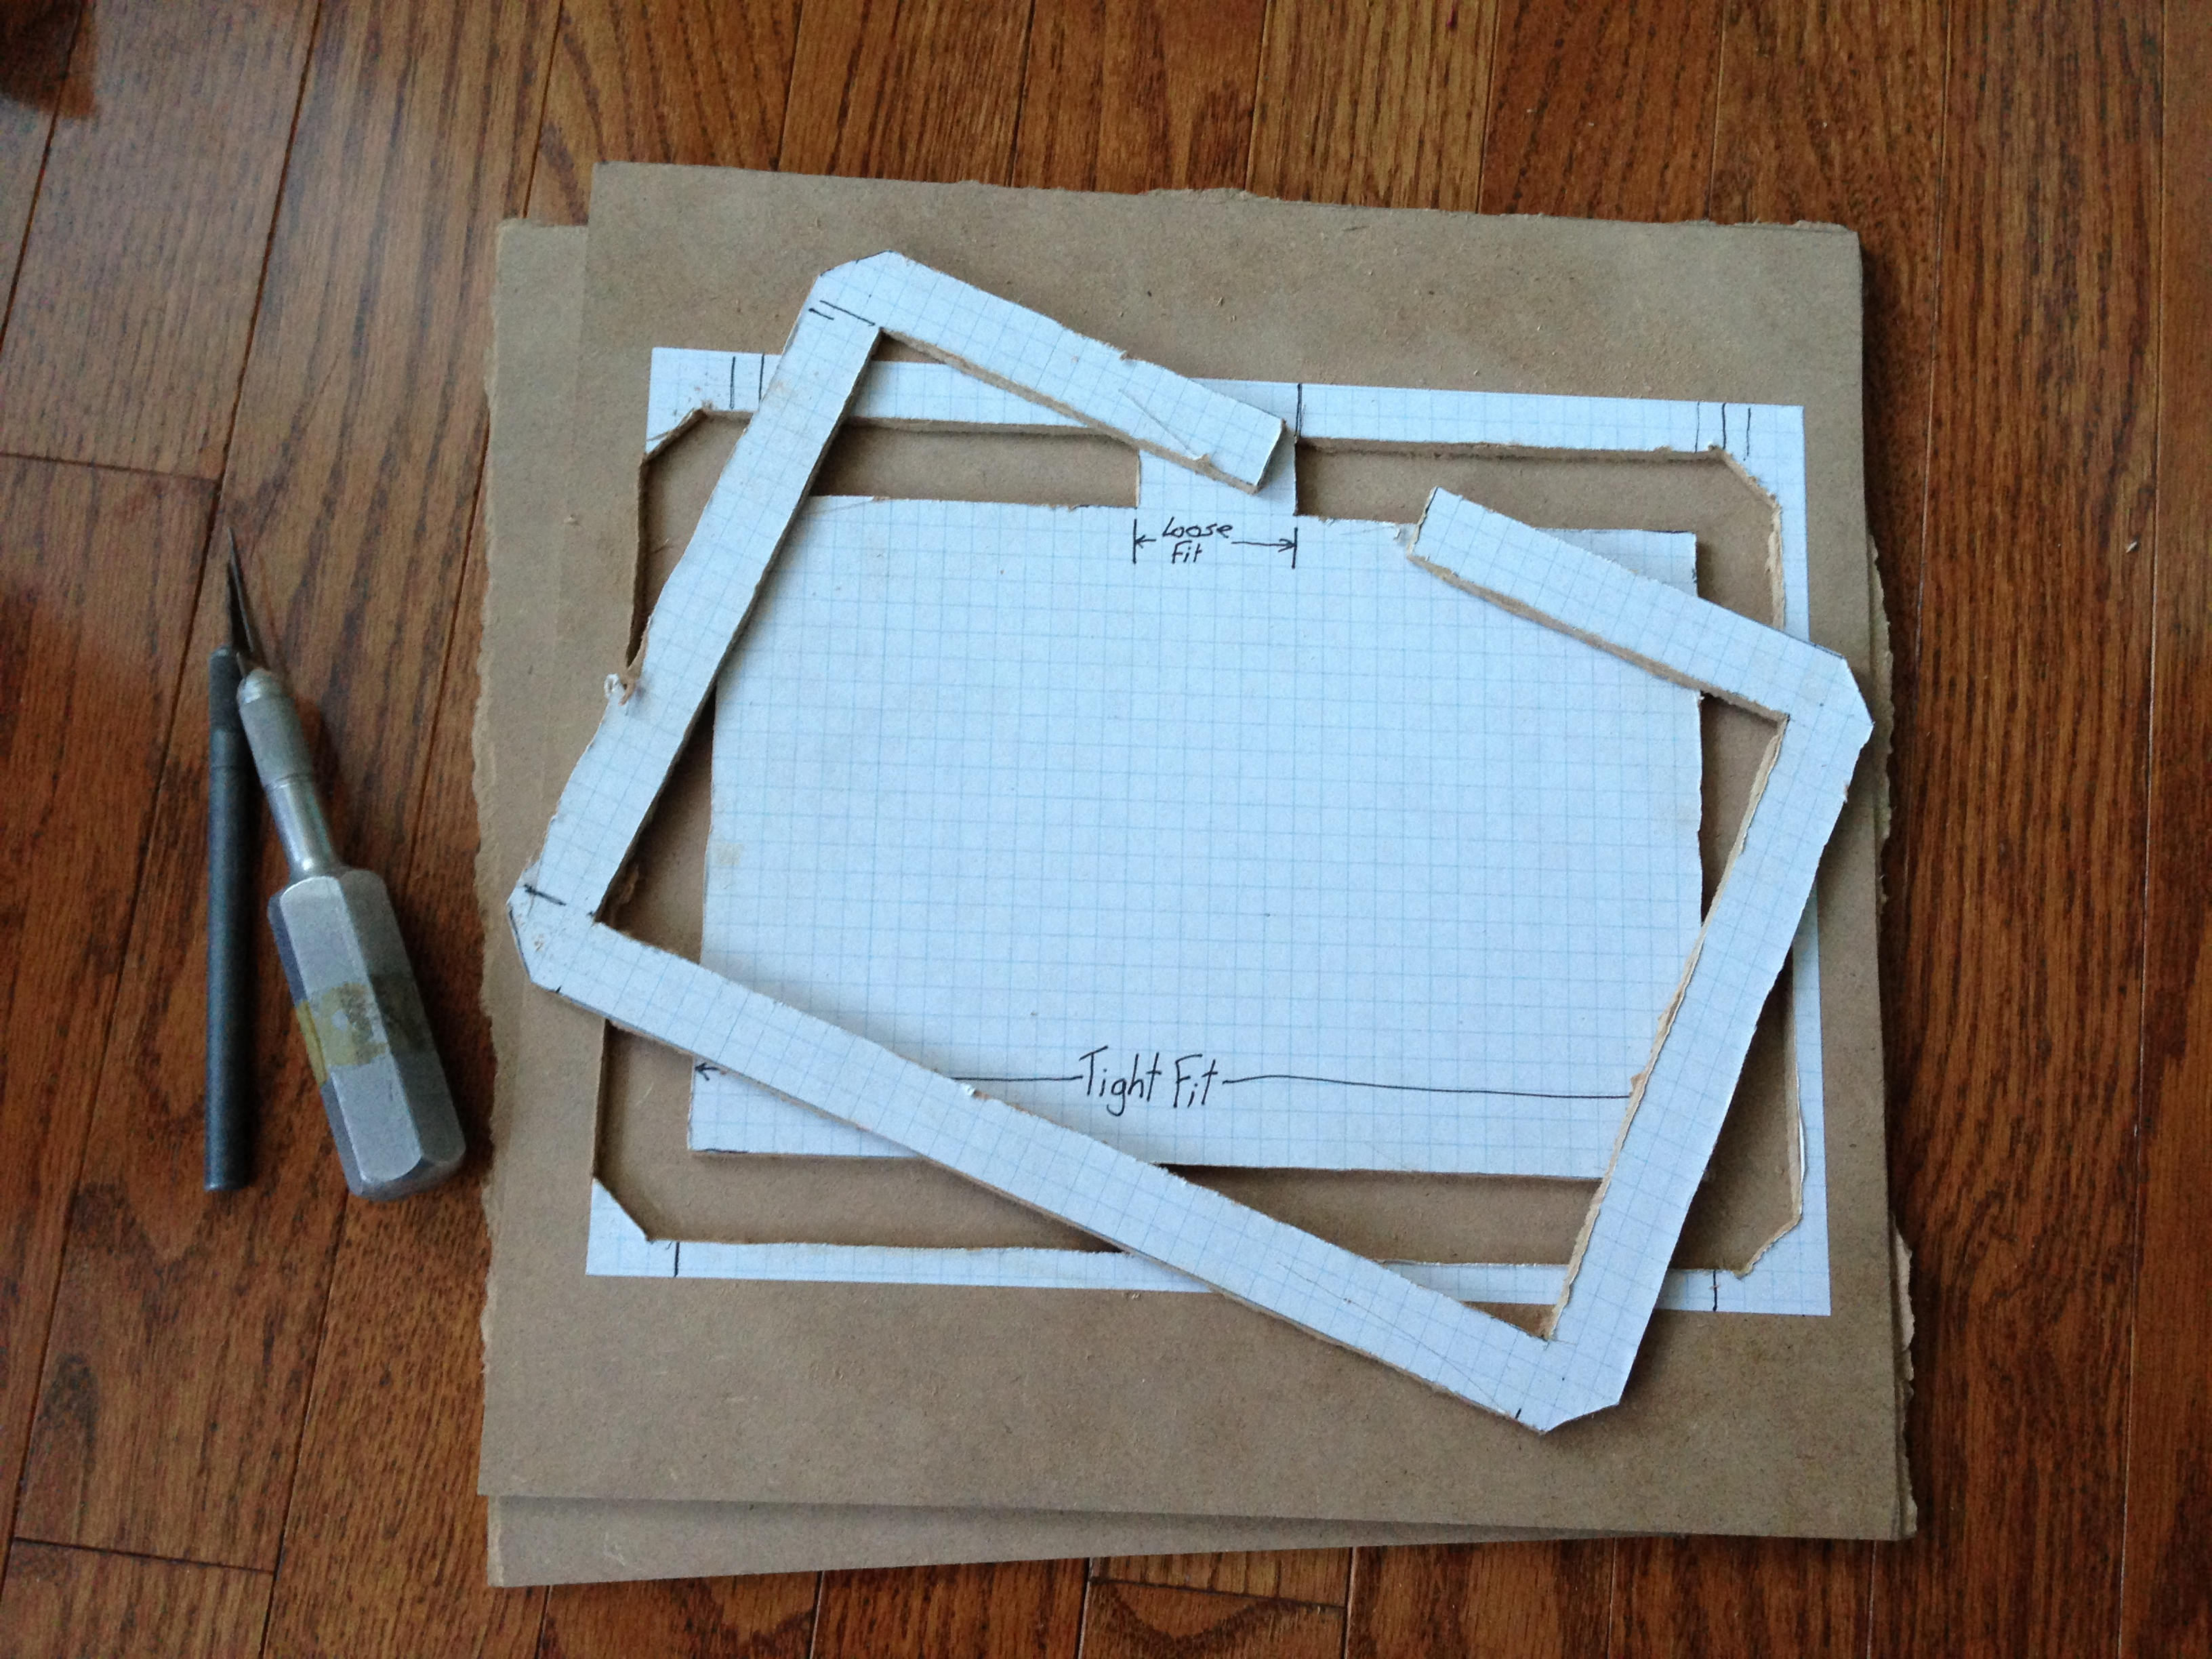 Picture of Cut Out Frame; Keep Outline Intact